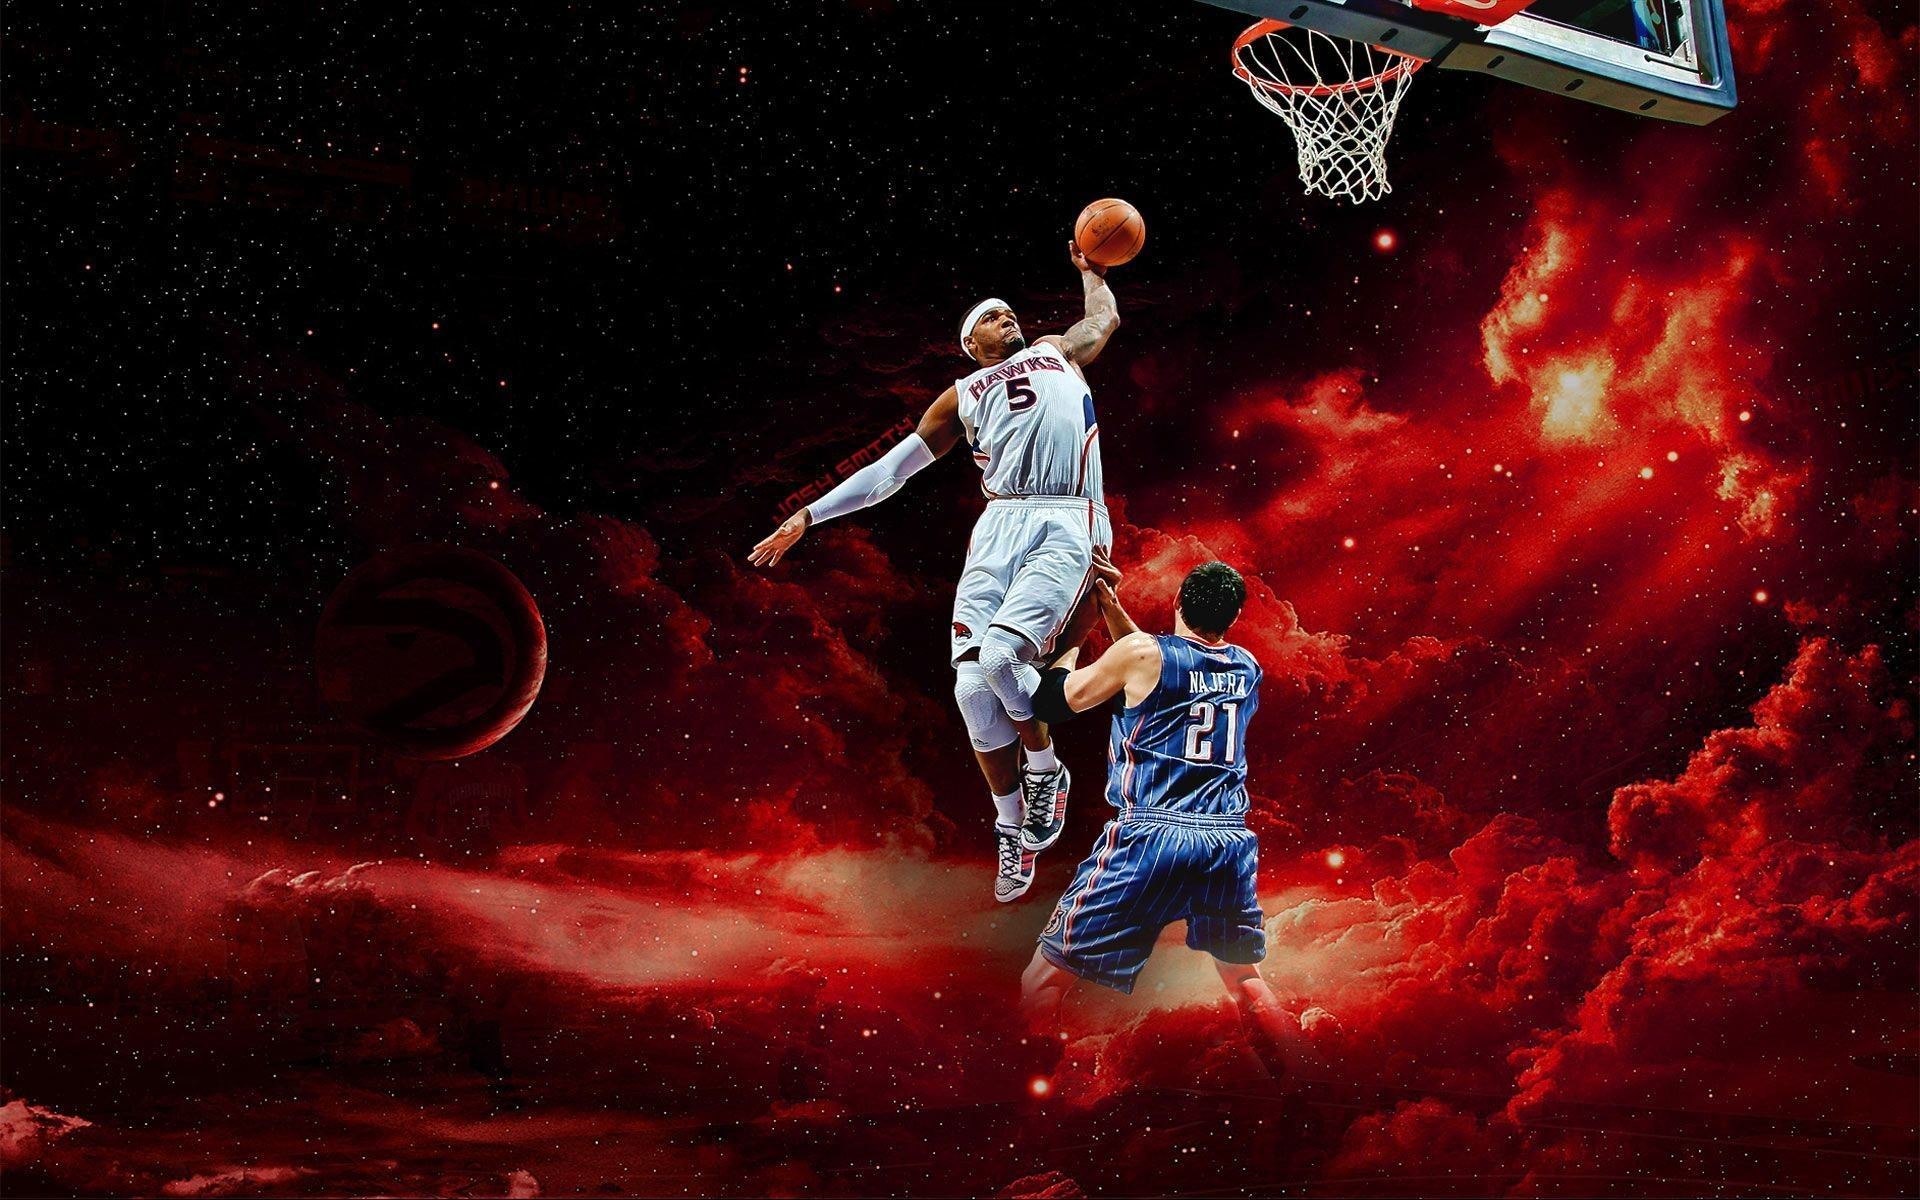 Cool basketball wallpaper images 71 images - Cool basketball wallpapers hd ...